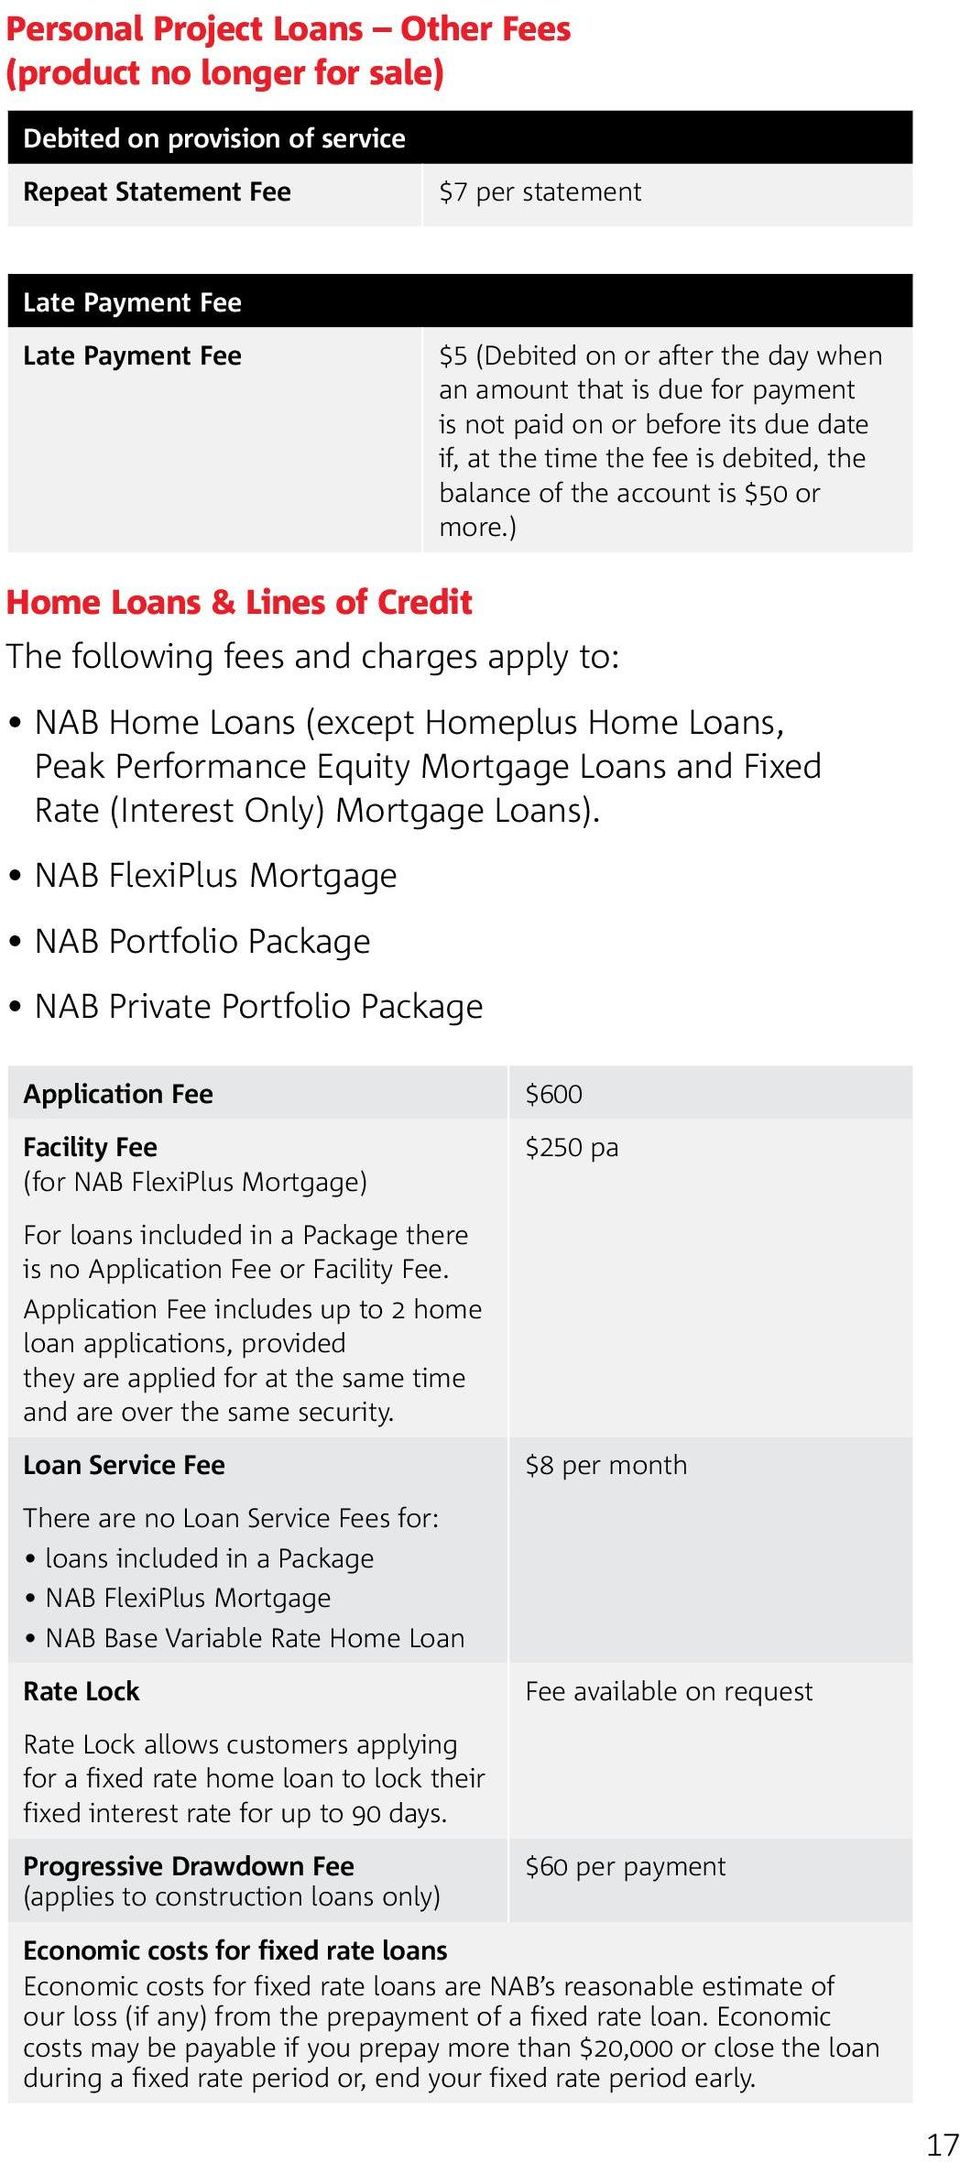 ) Home Loans & Lines of Credit The following fees and charges apply to: NAB Home Loans (except Homeplus Home Loans, Peak Performance Equity Mortgage Loans and Fixed Rate (Interest Only) Mortgage